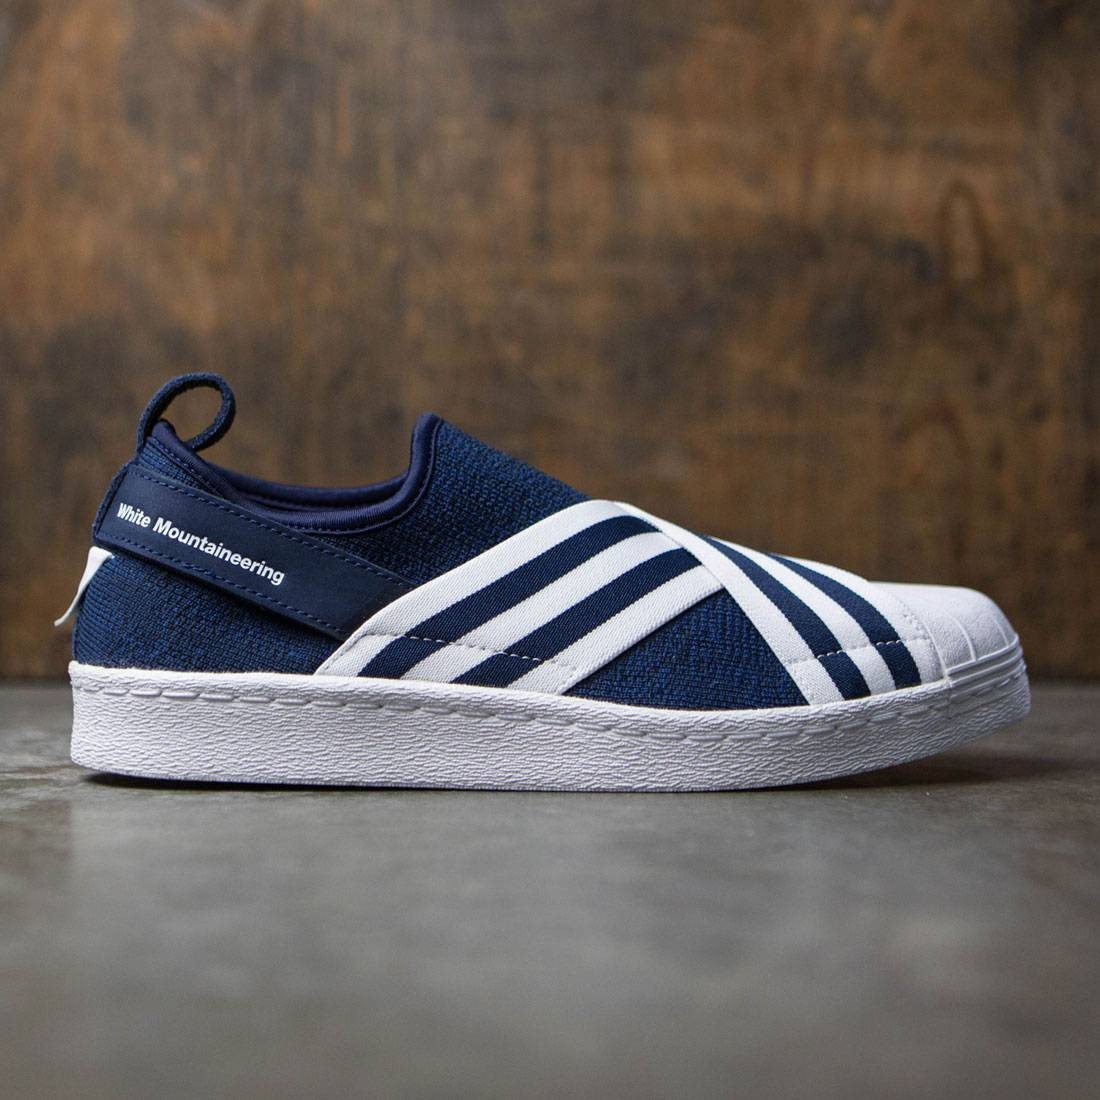 1f6b7ceedccd4 Adidas Men White Mountaineering Superstar Slip-On Primeknit navy collegiate  navy footwear white